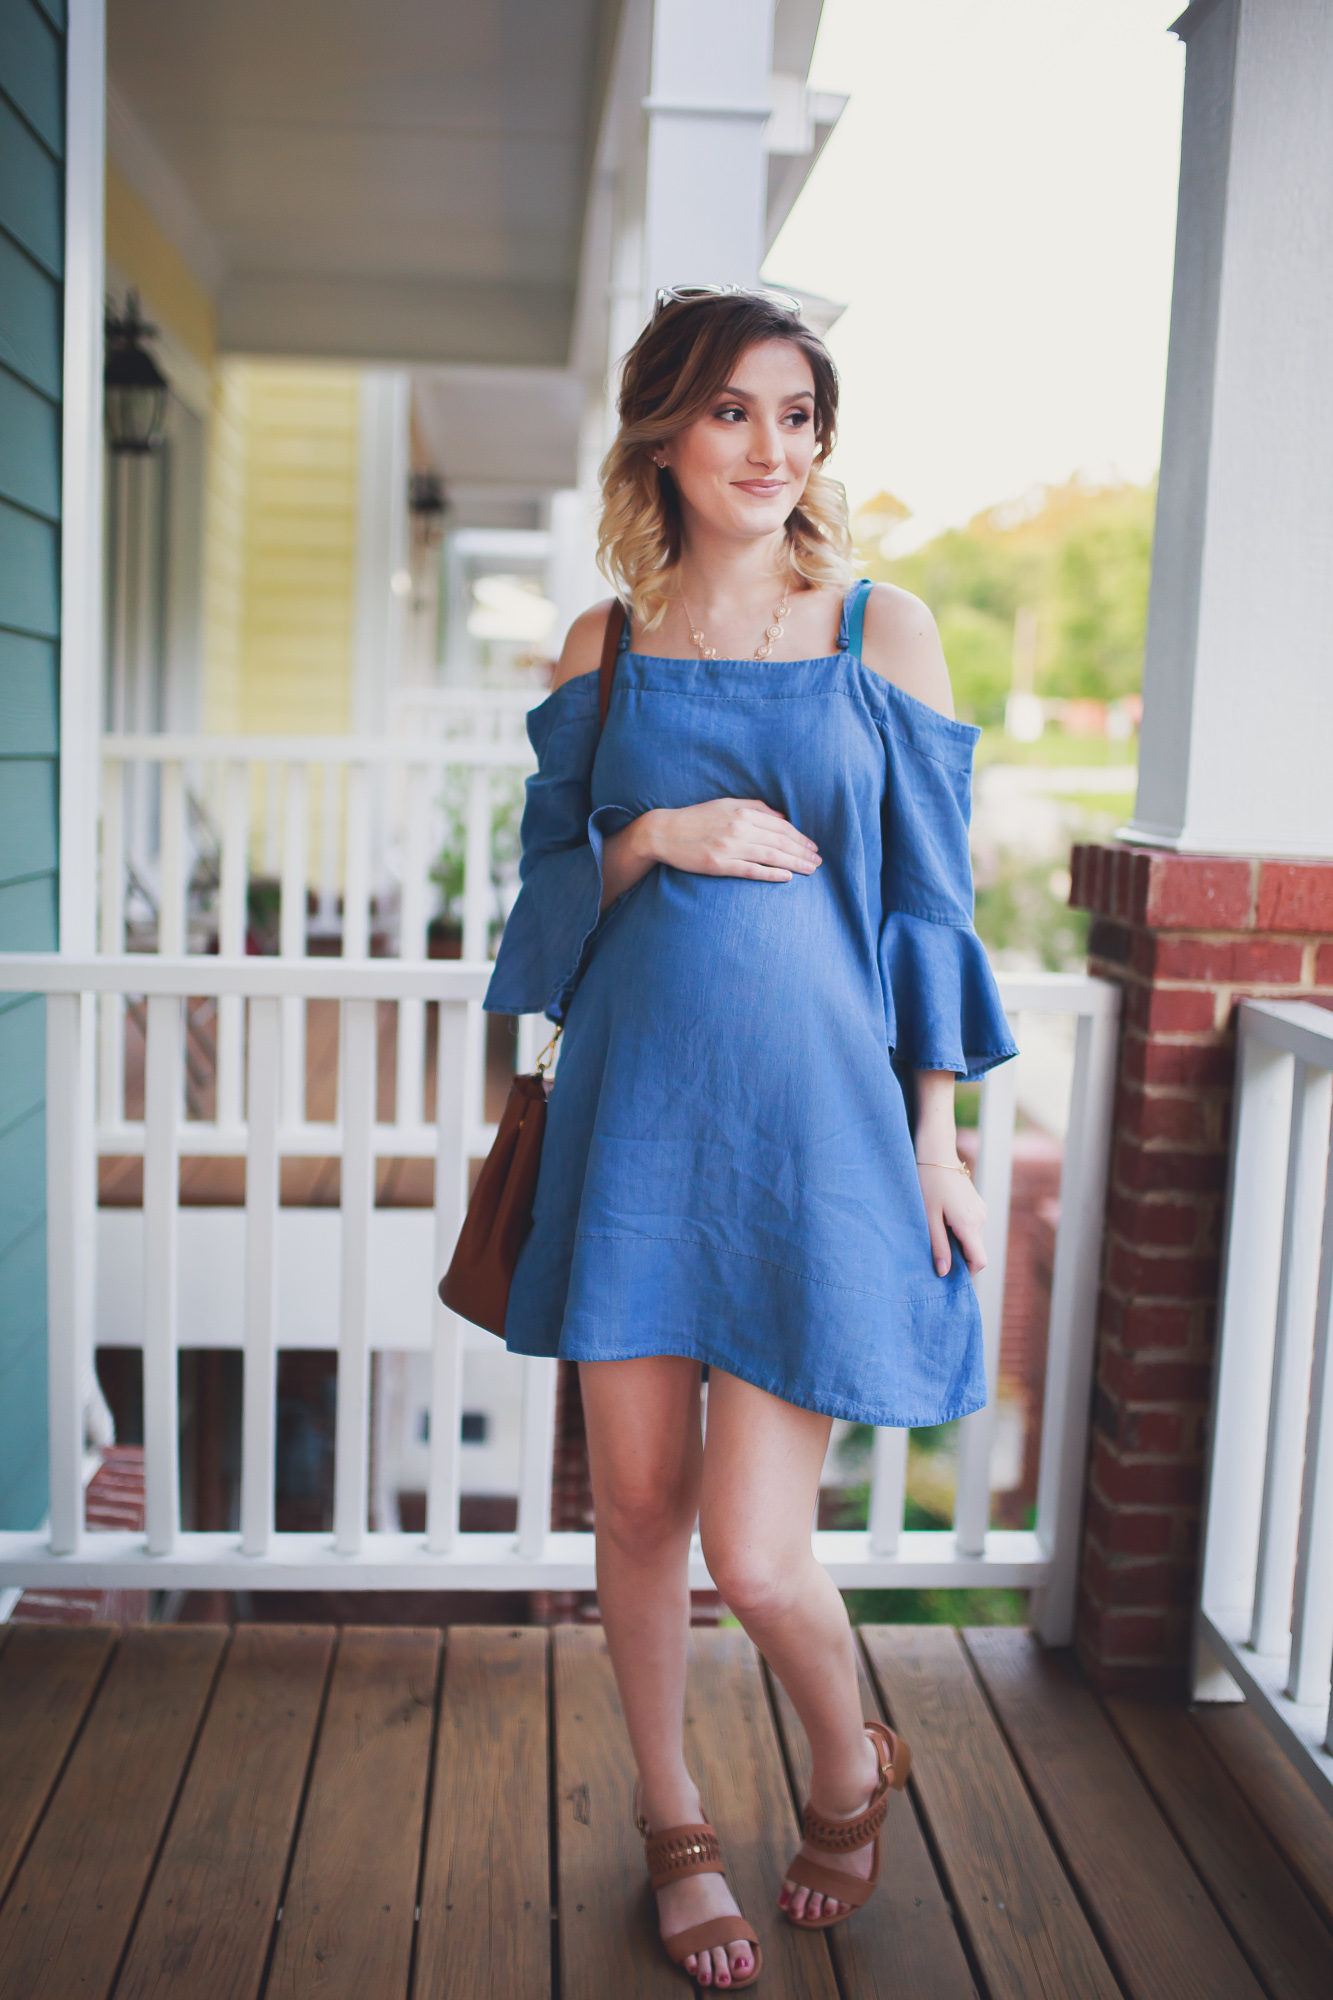 fashion, lifestyle, and beauty blogger and vlogger Jessica Linn from Linn Style wearing a chambray cold shoulder dress from Francesca's, brown heels from Matisse Footwear, a brown Michael Kors Bag, Necklace from Francesca's, and a bracelet from local North Carolina CY Design Studio. You don't have to wear only maternity clothes when you're pregnant. You can wear non-maternity maternity clothes!